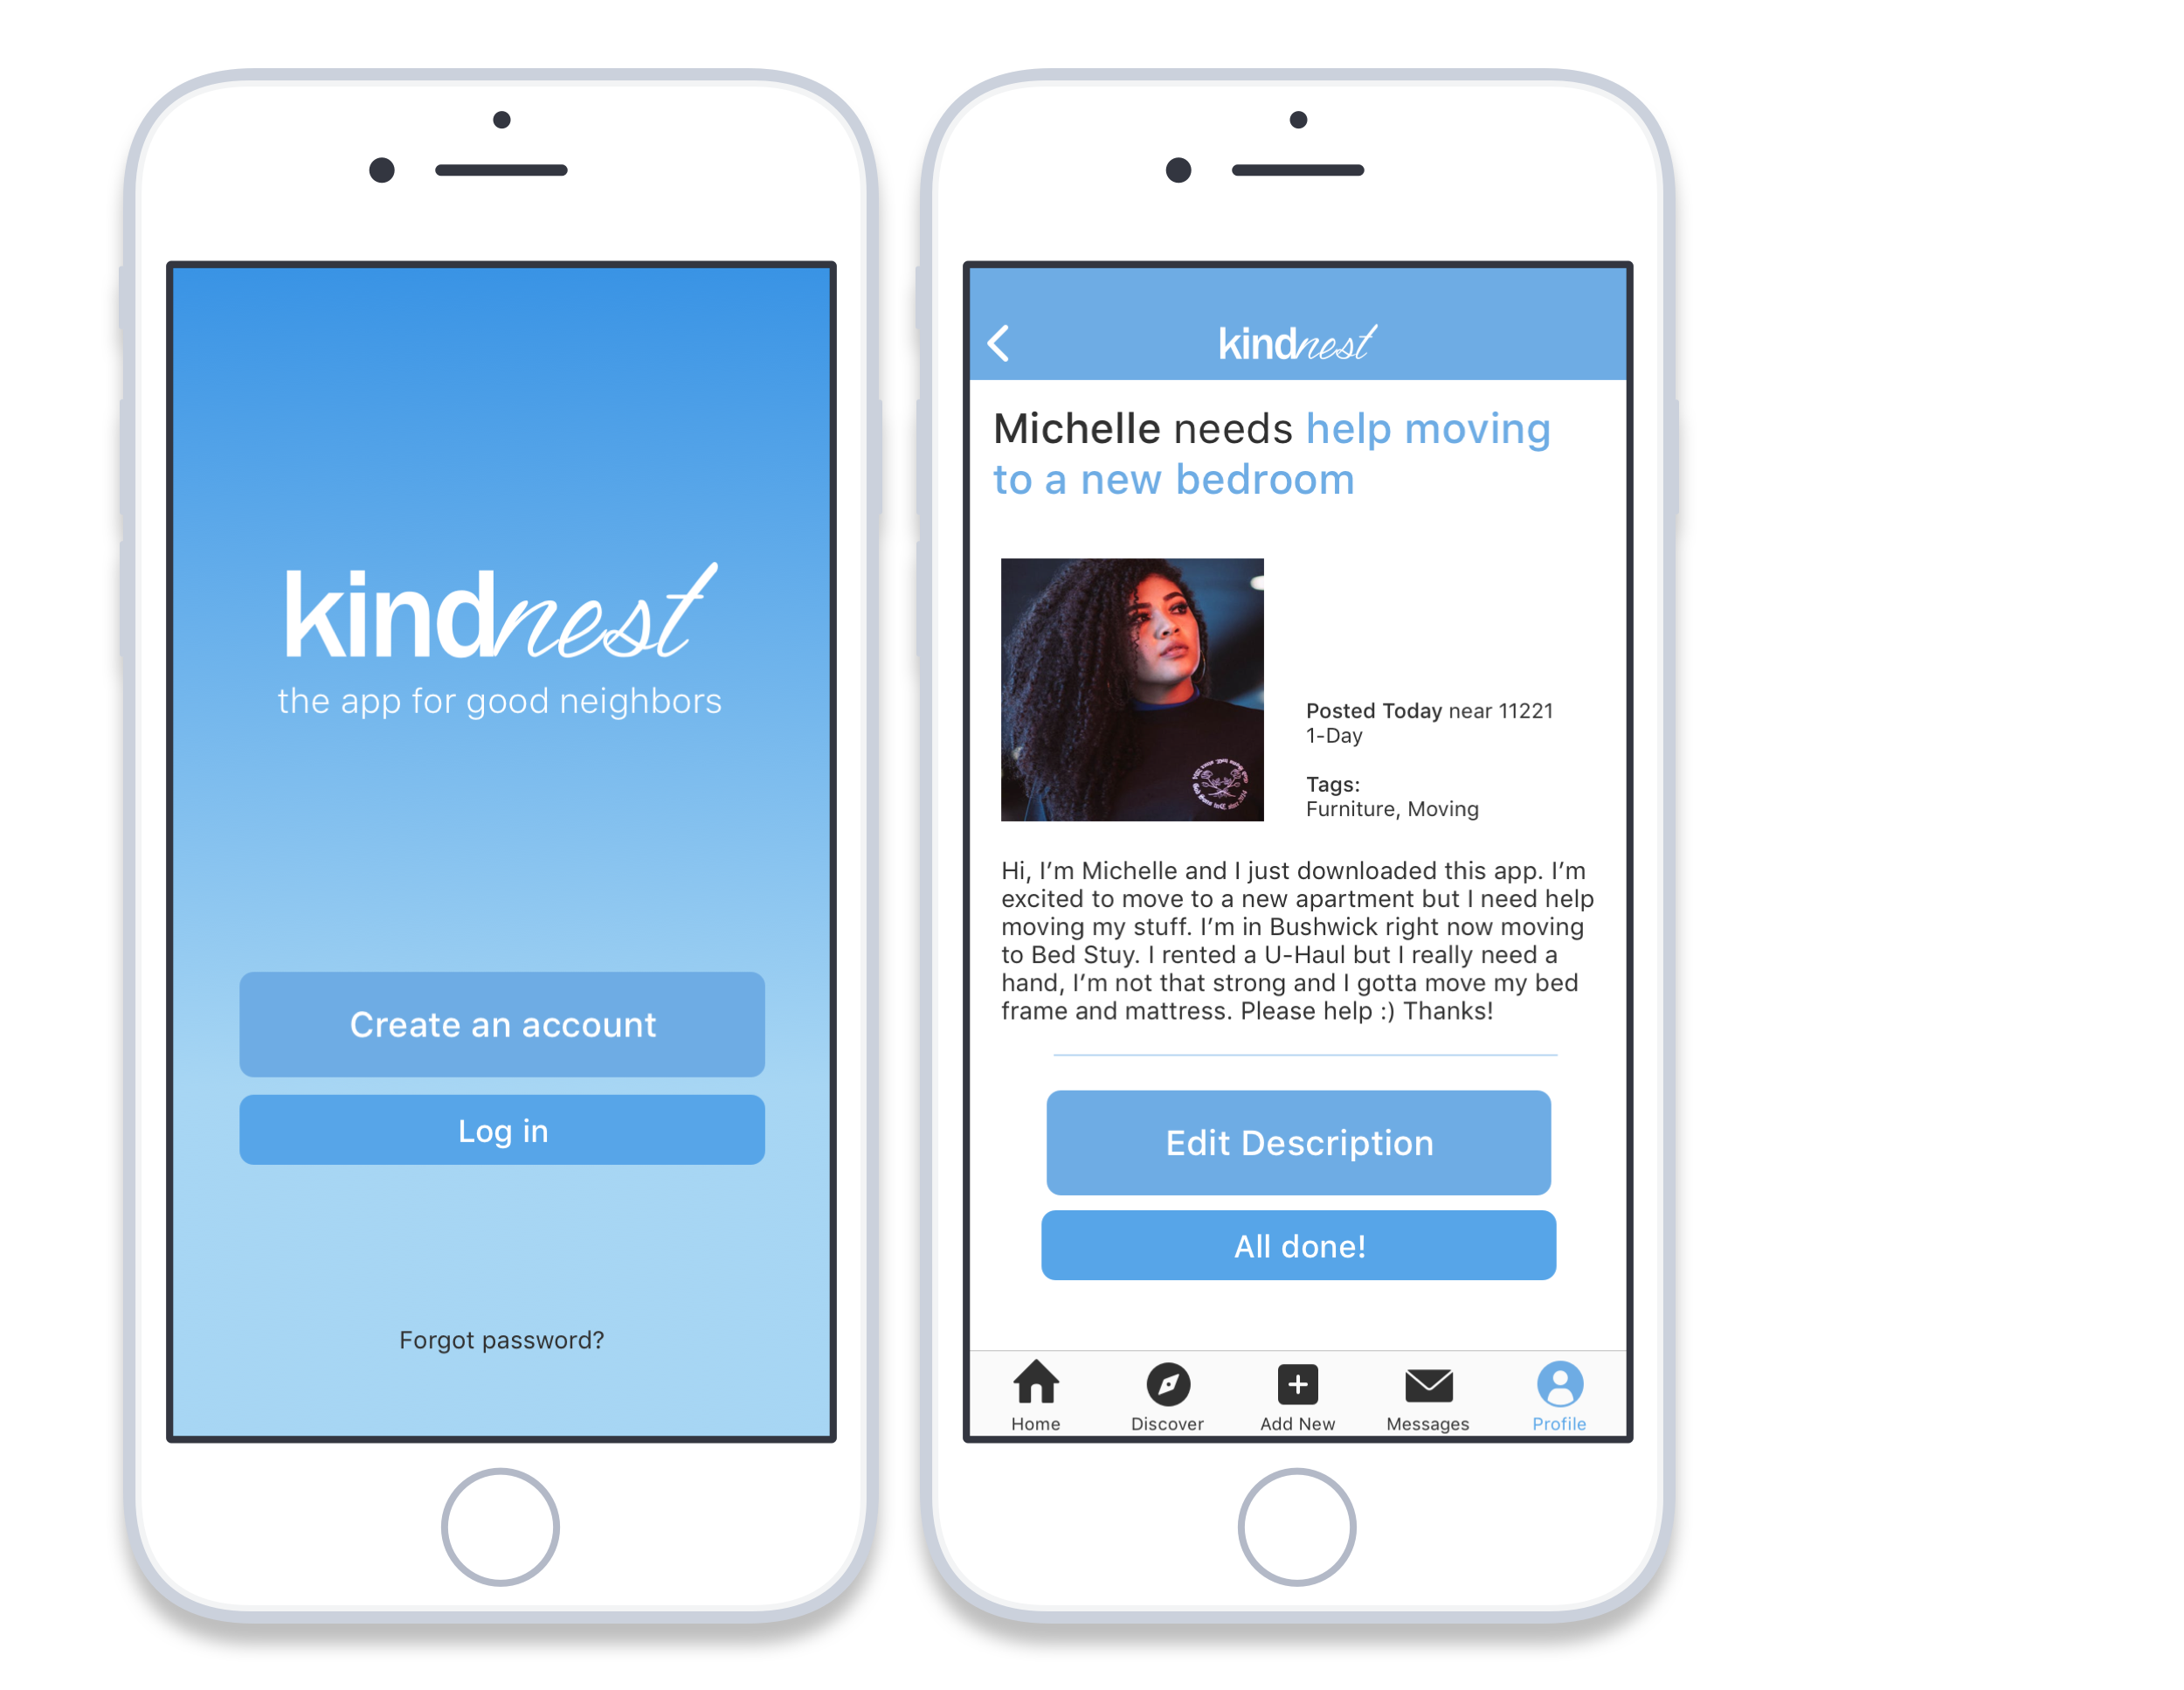 Brief - Over the winter holidays, I worked on an iOS app concept on the theme of kindness. Working independently over the course of a week, I came up with Kindnest, a mobile app that encourages city dwellers to do kind acts for each other.